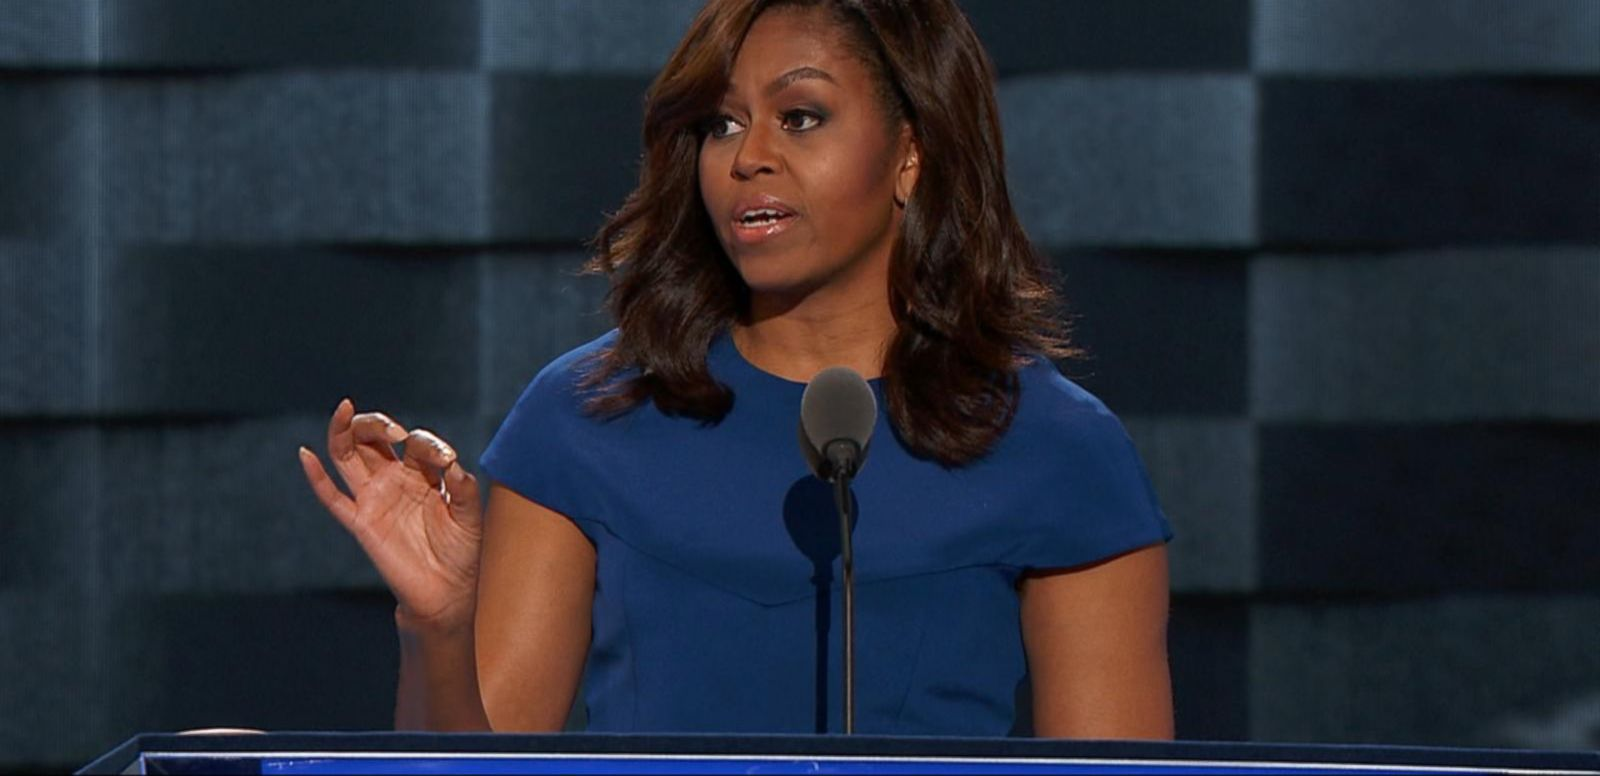 Michelle Obama, Bernie Sanders Speak at DNC After Rocky Start